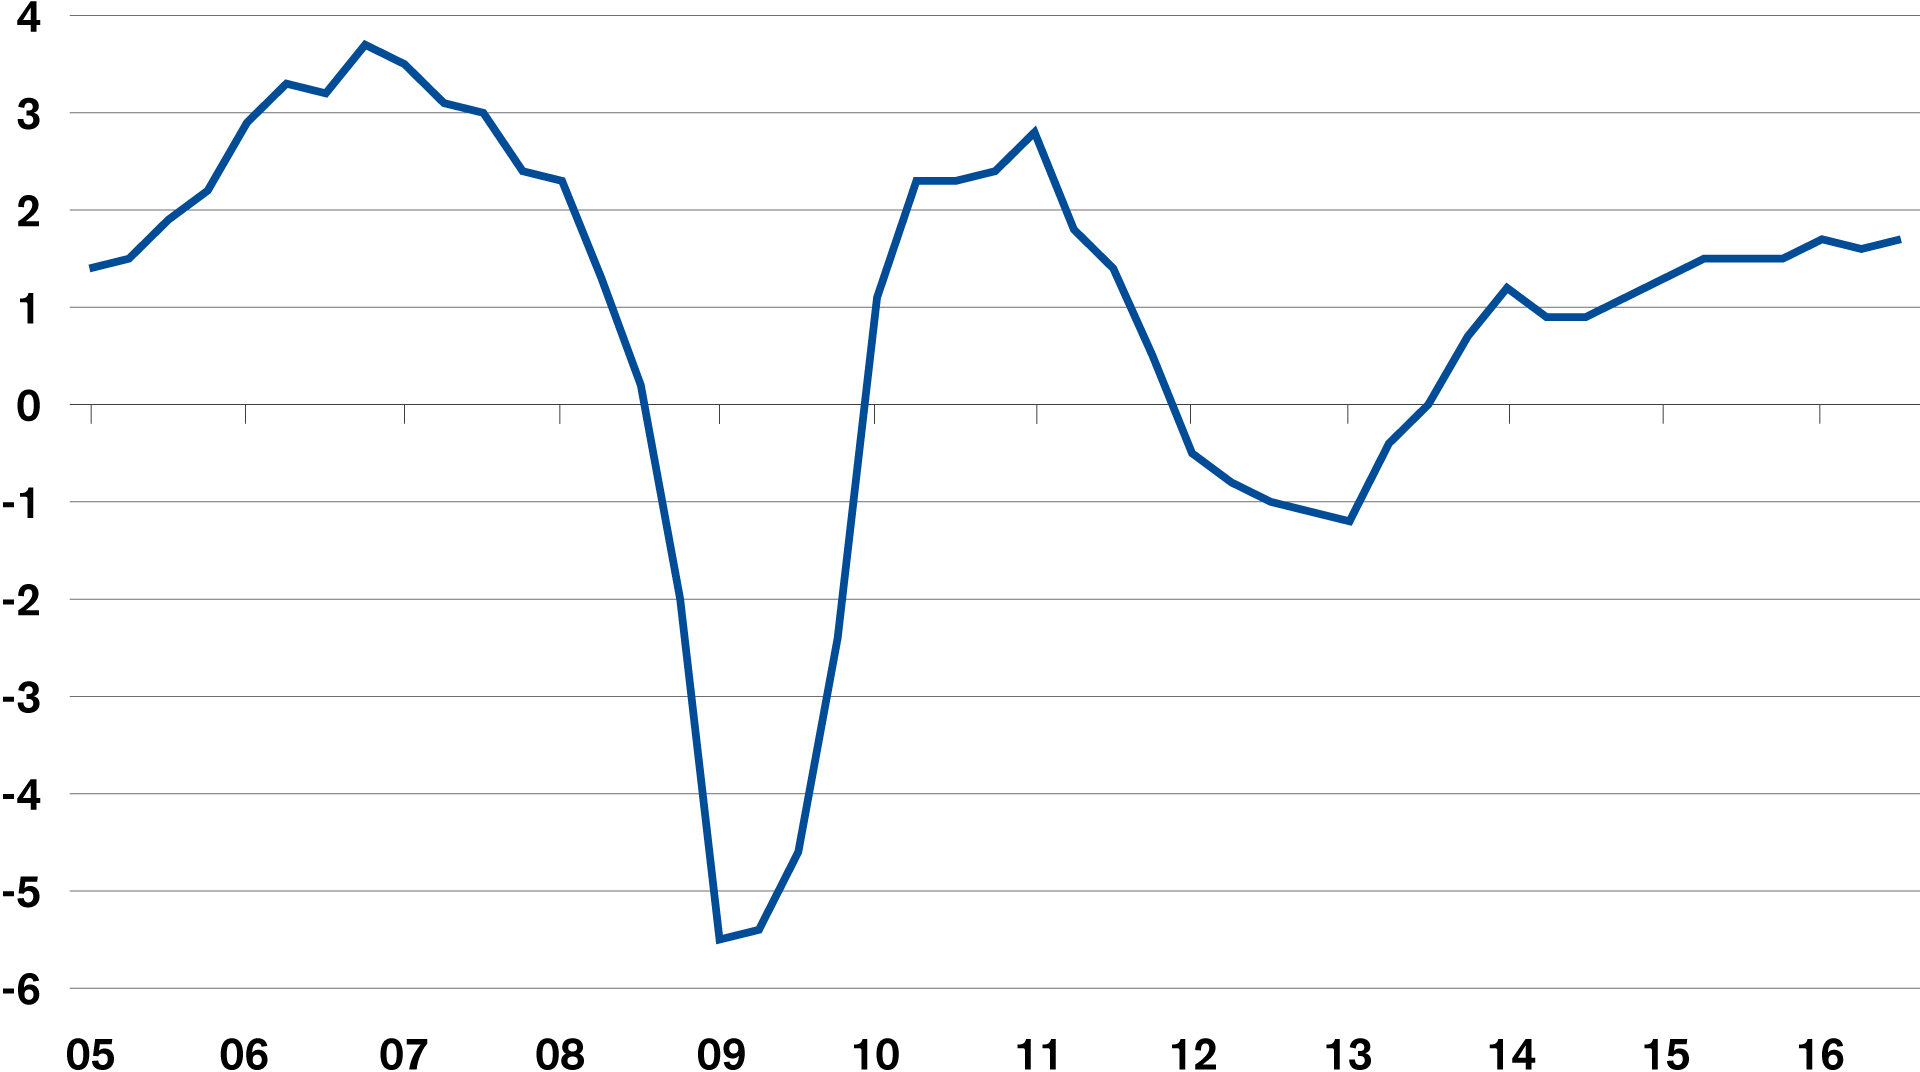 Unspectacular but stable growth (eurozone GDP, y/y%)